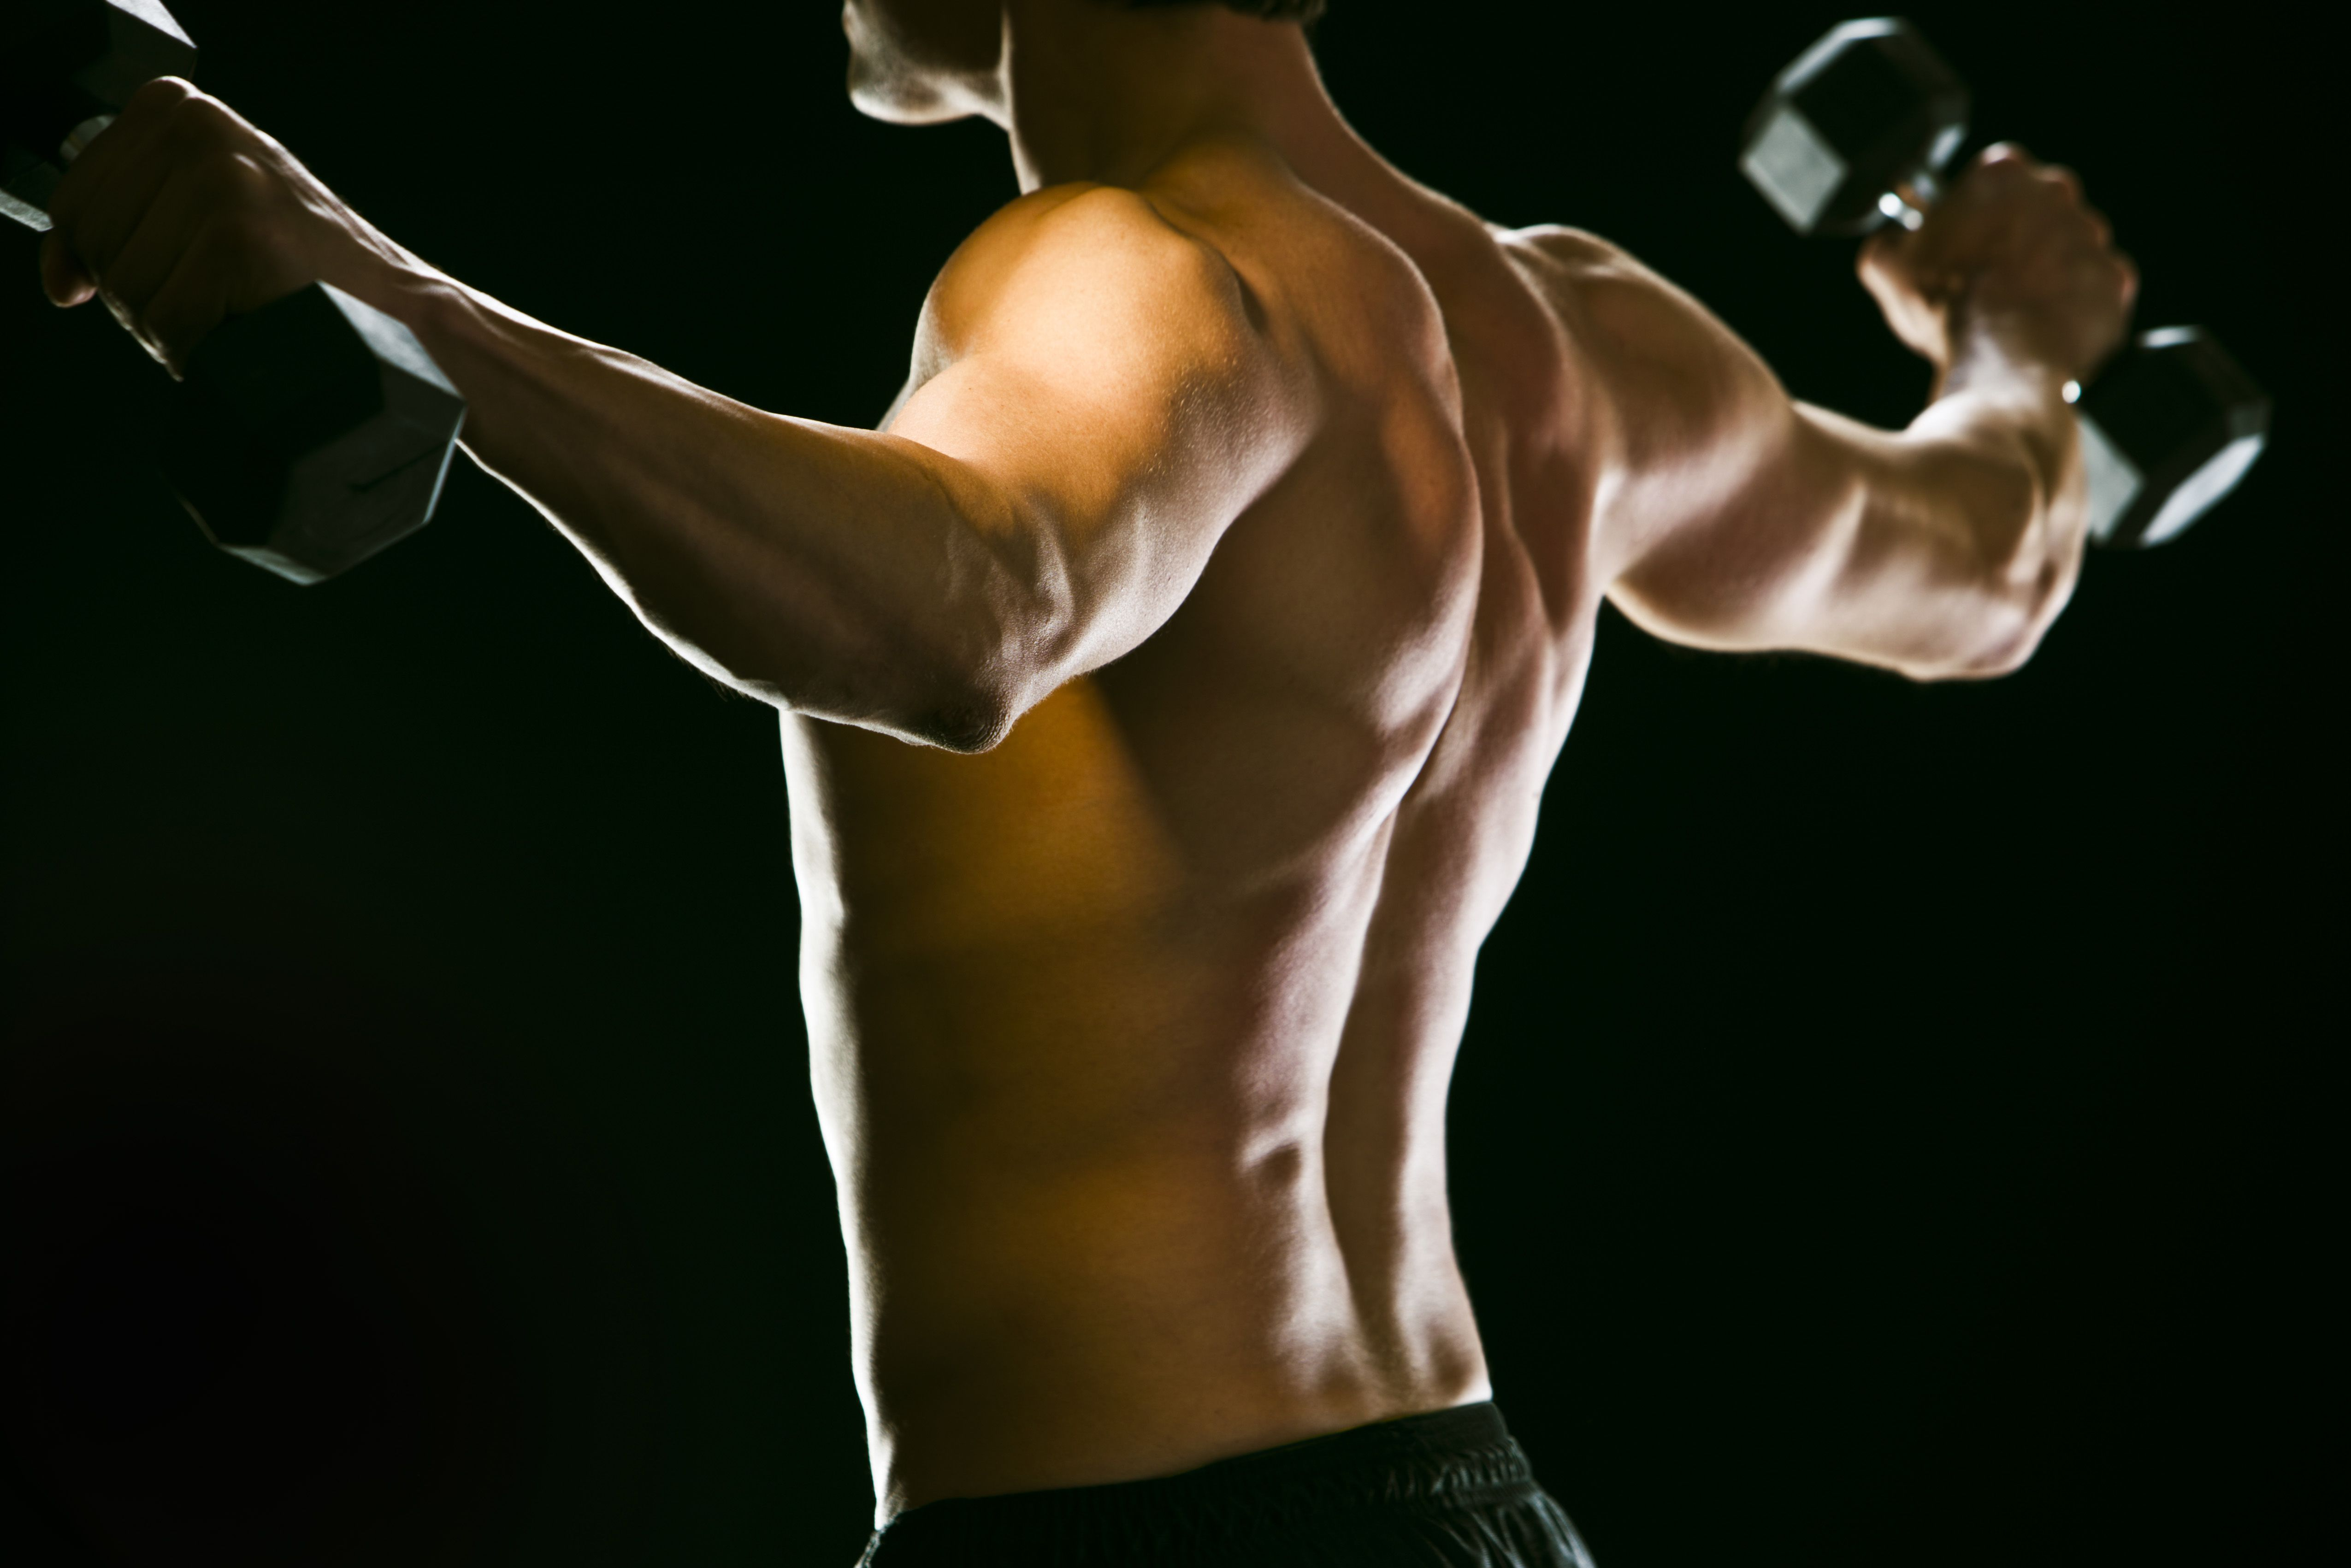 5 Shoulder Exercises You Should Add to Your Upper Body Workouts